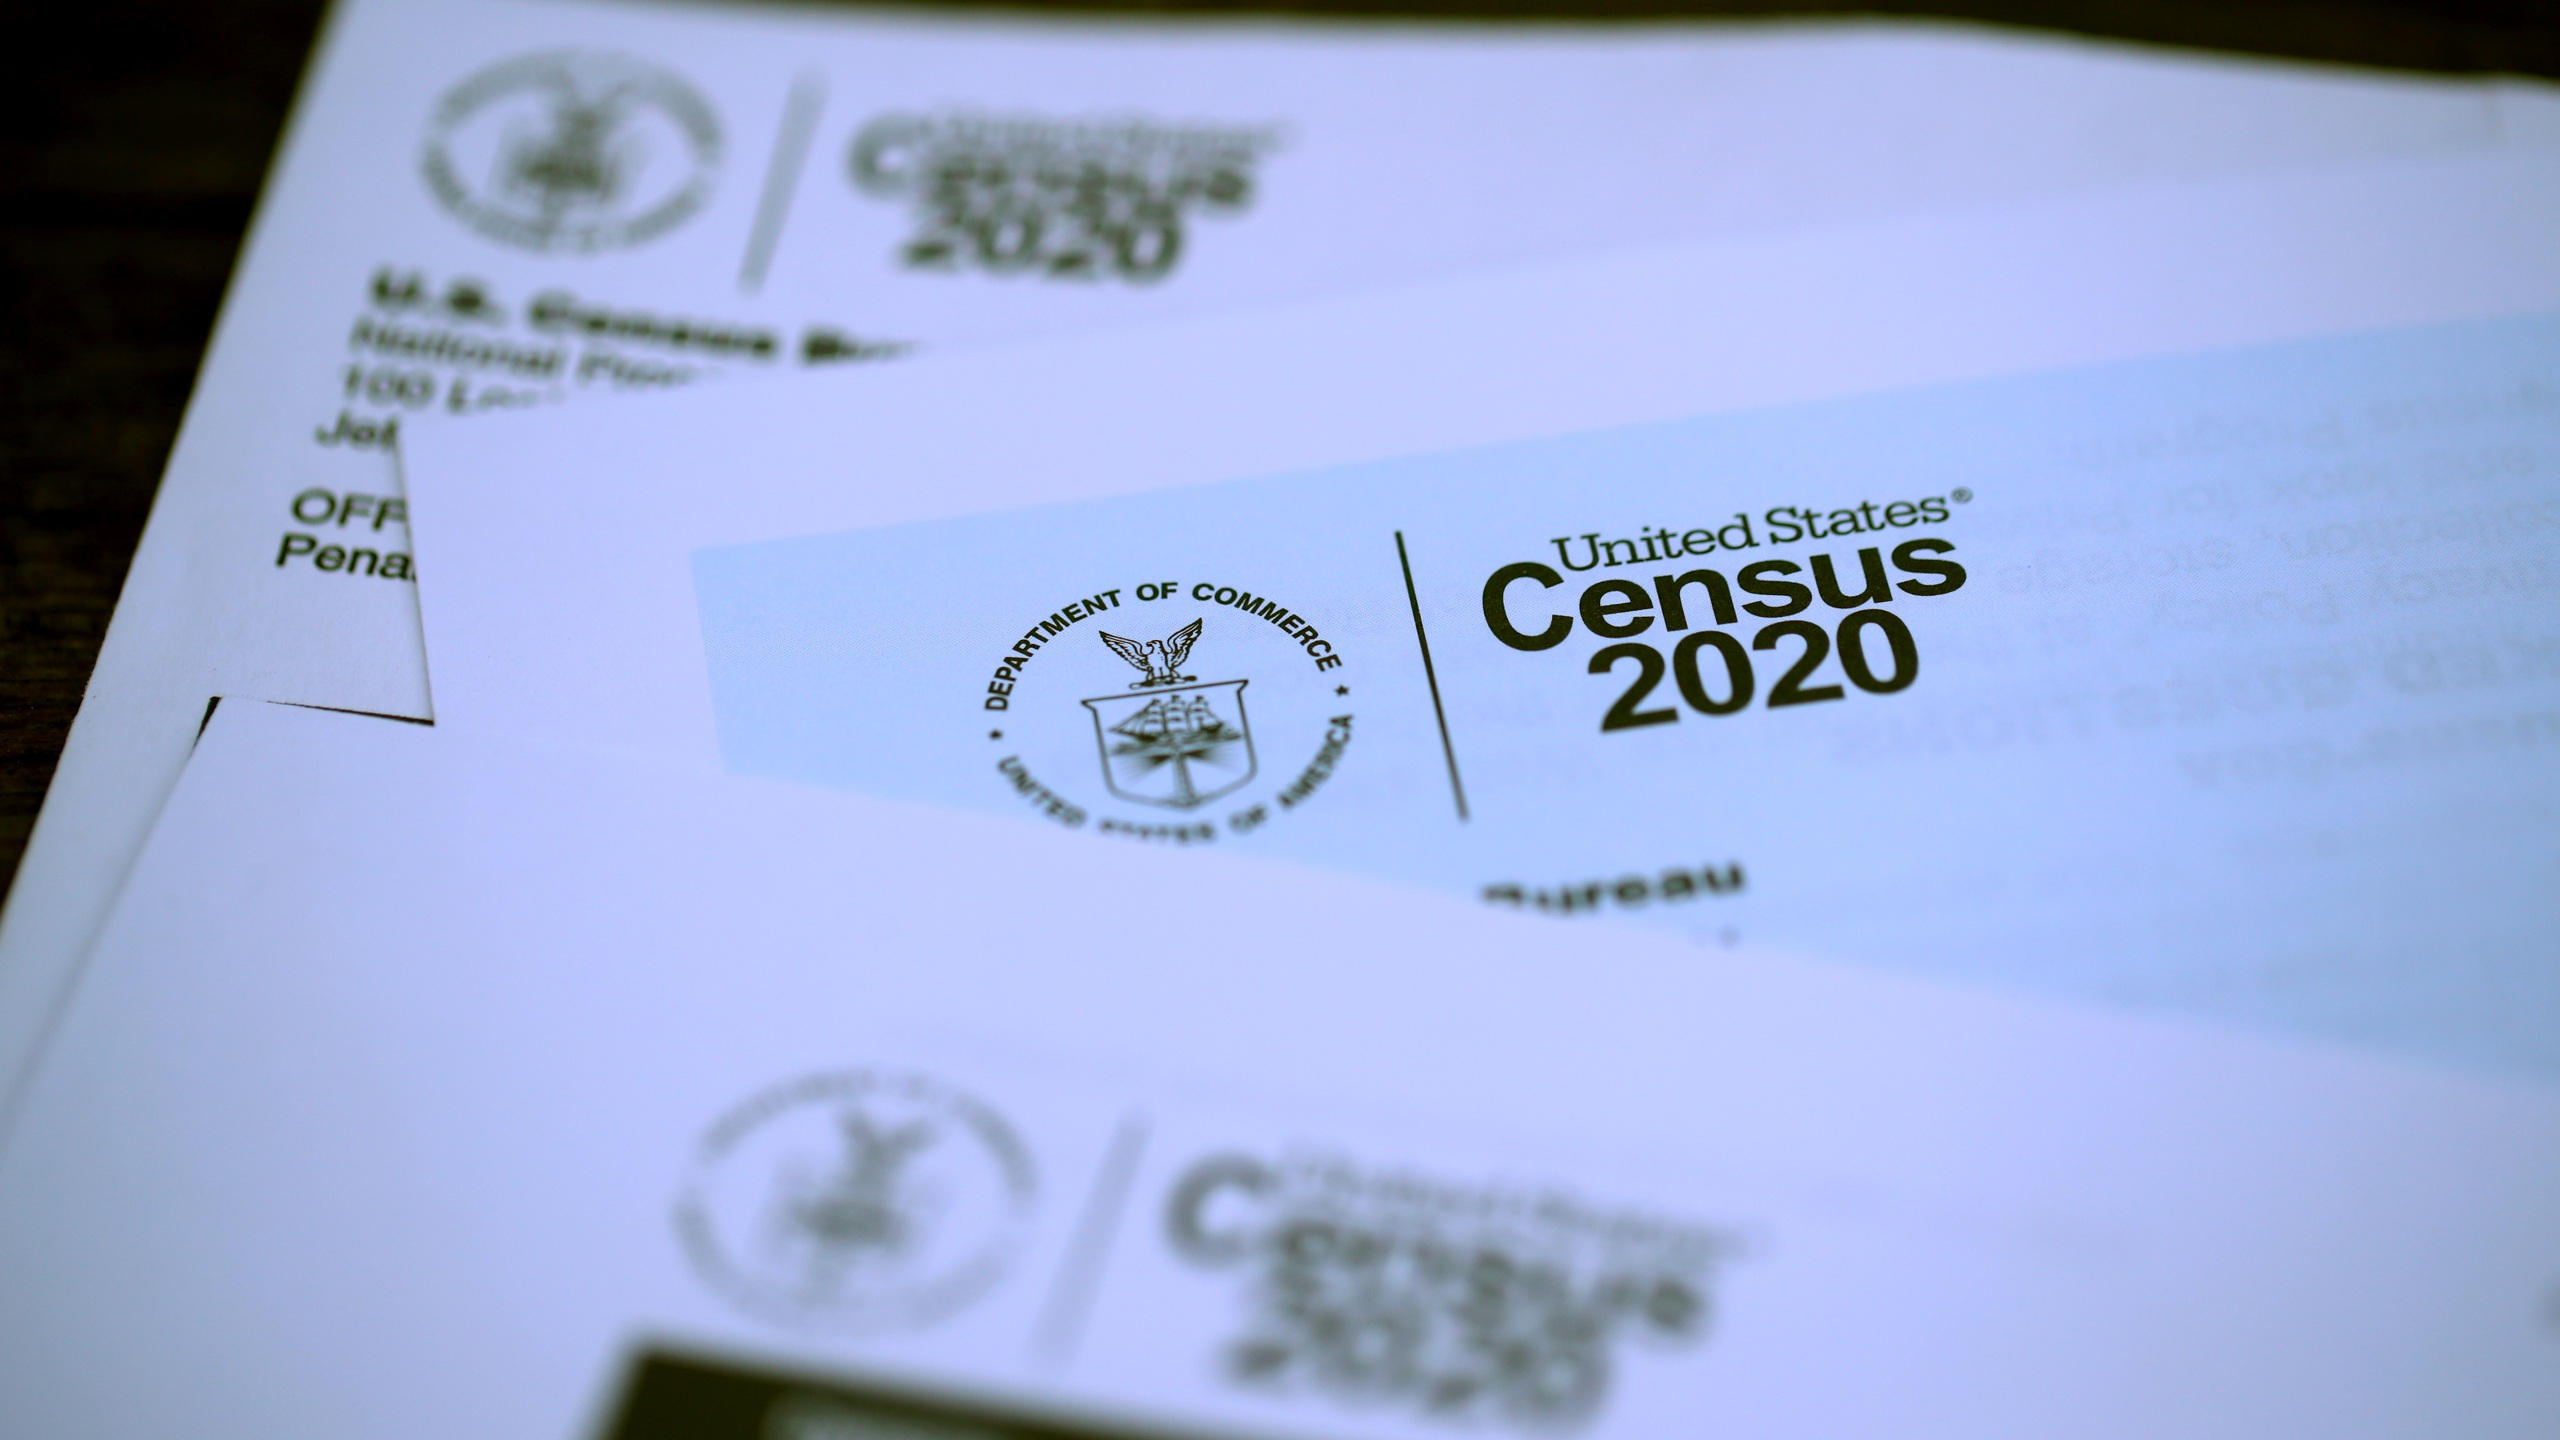 The U.S. Census logo appears on census materials received in the mail with an invitation to fill out census information online on March 19, 2020 in San Anselmo. (Justin Sullivan/Getty Images)